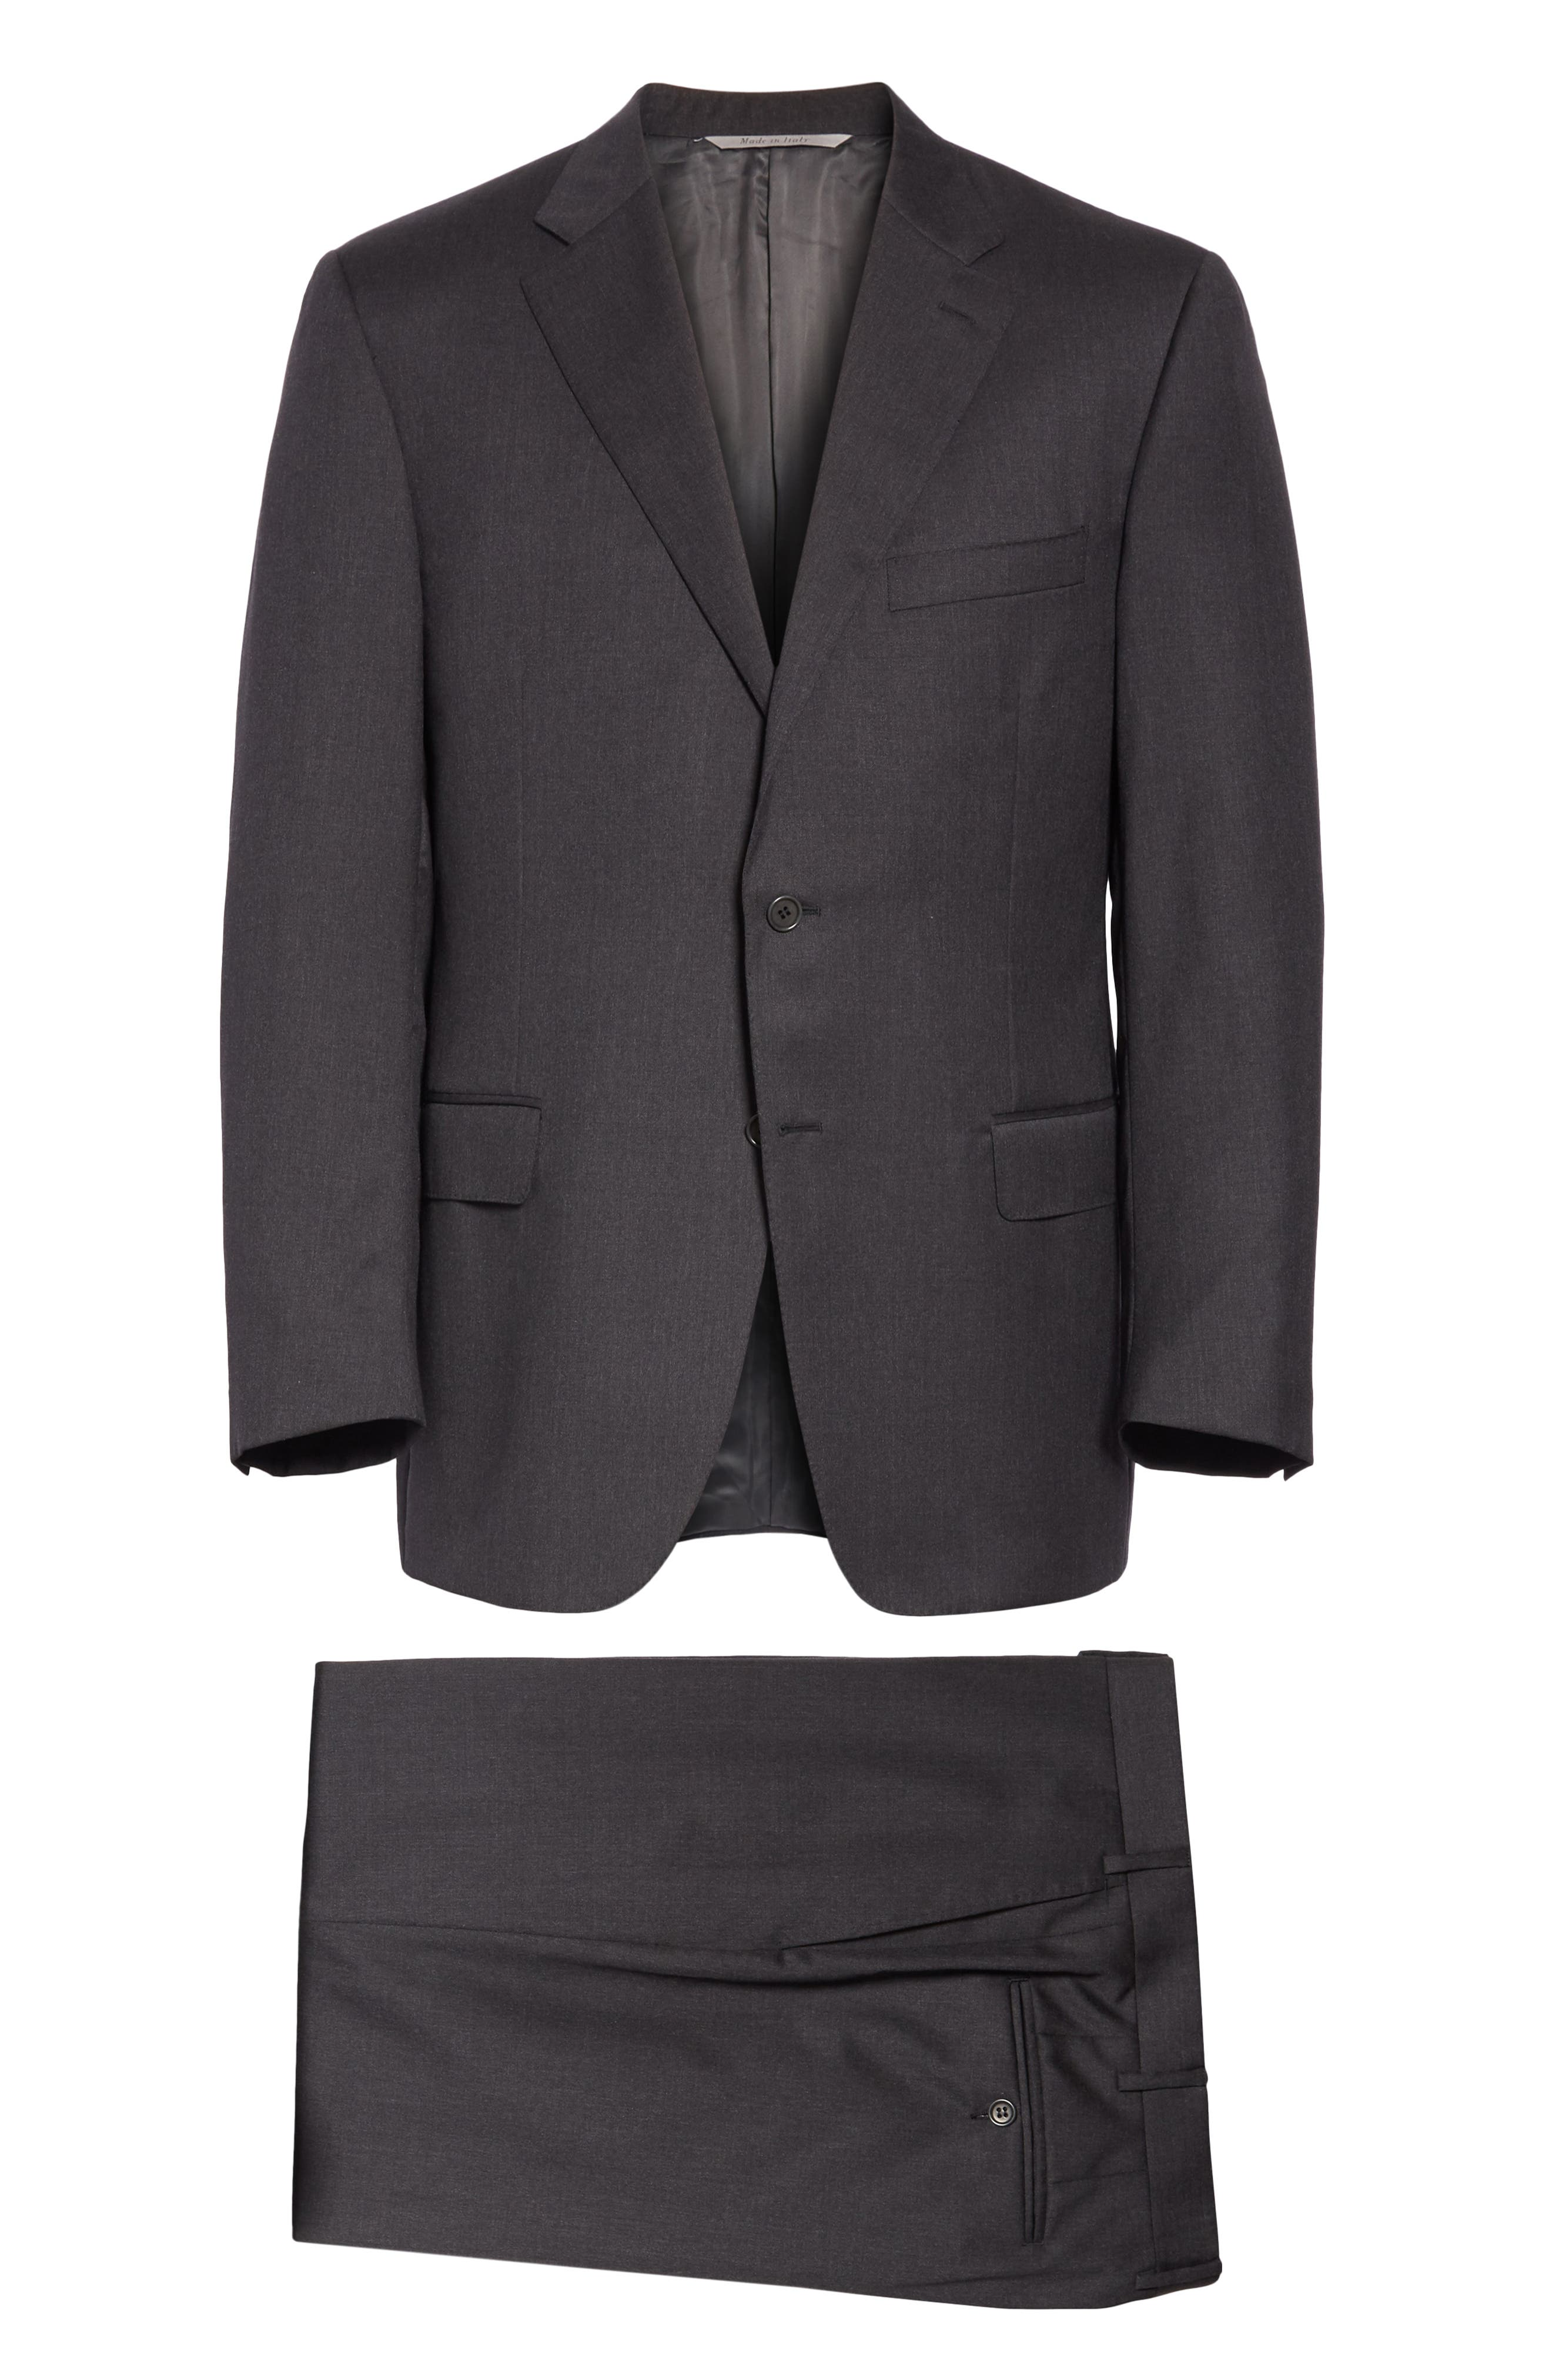 CANALI, Classic Fit Wool Suit, Alternate thumbnail 8, color, CHARCOAL